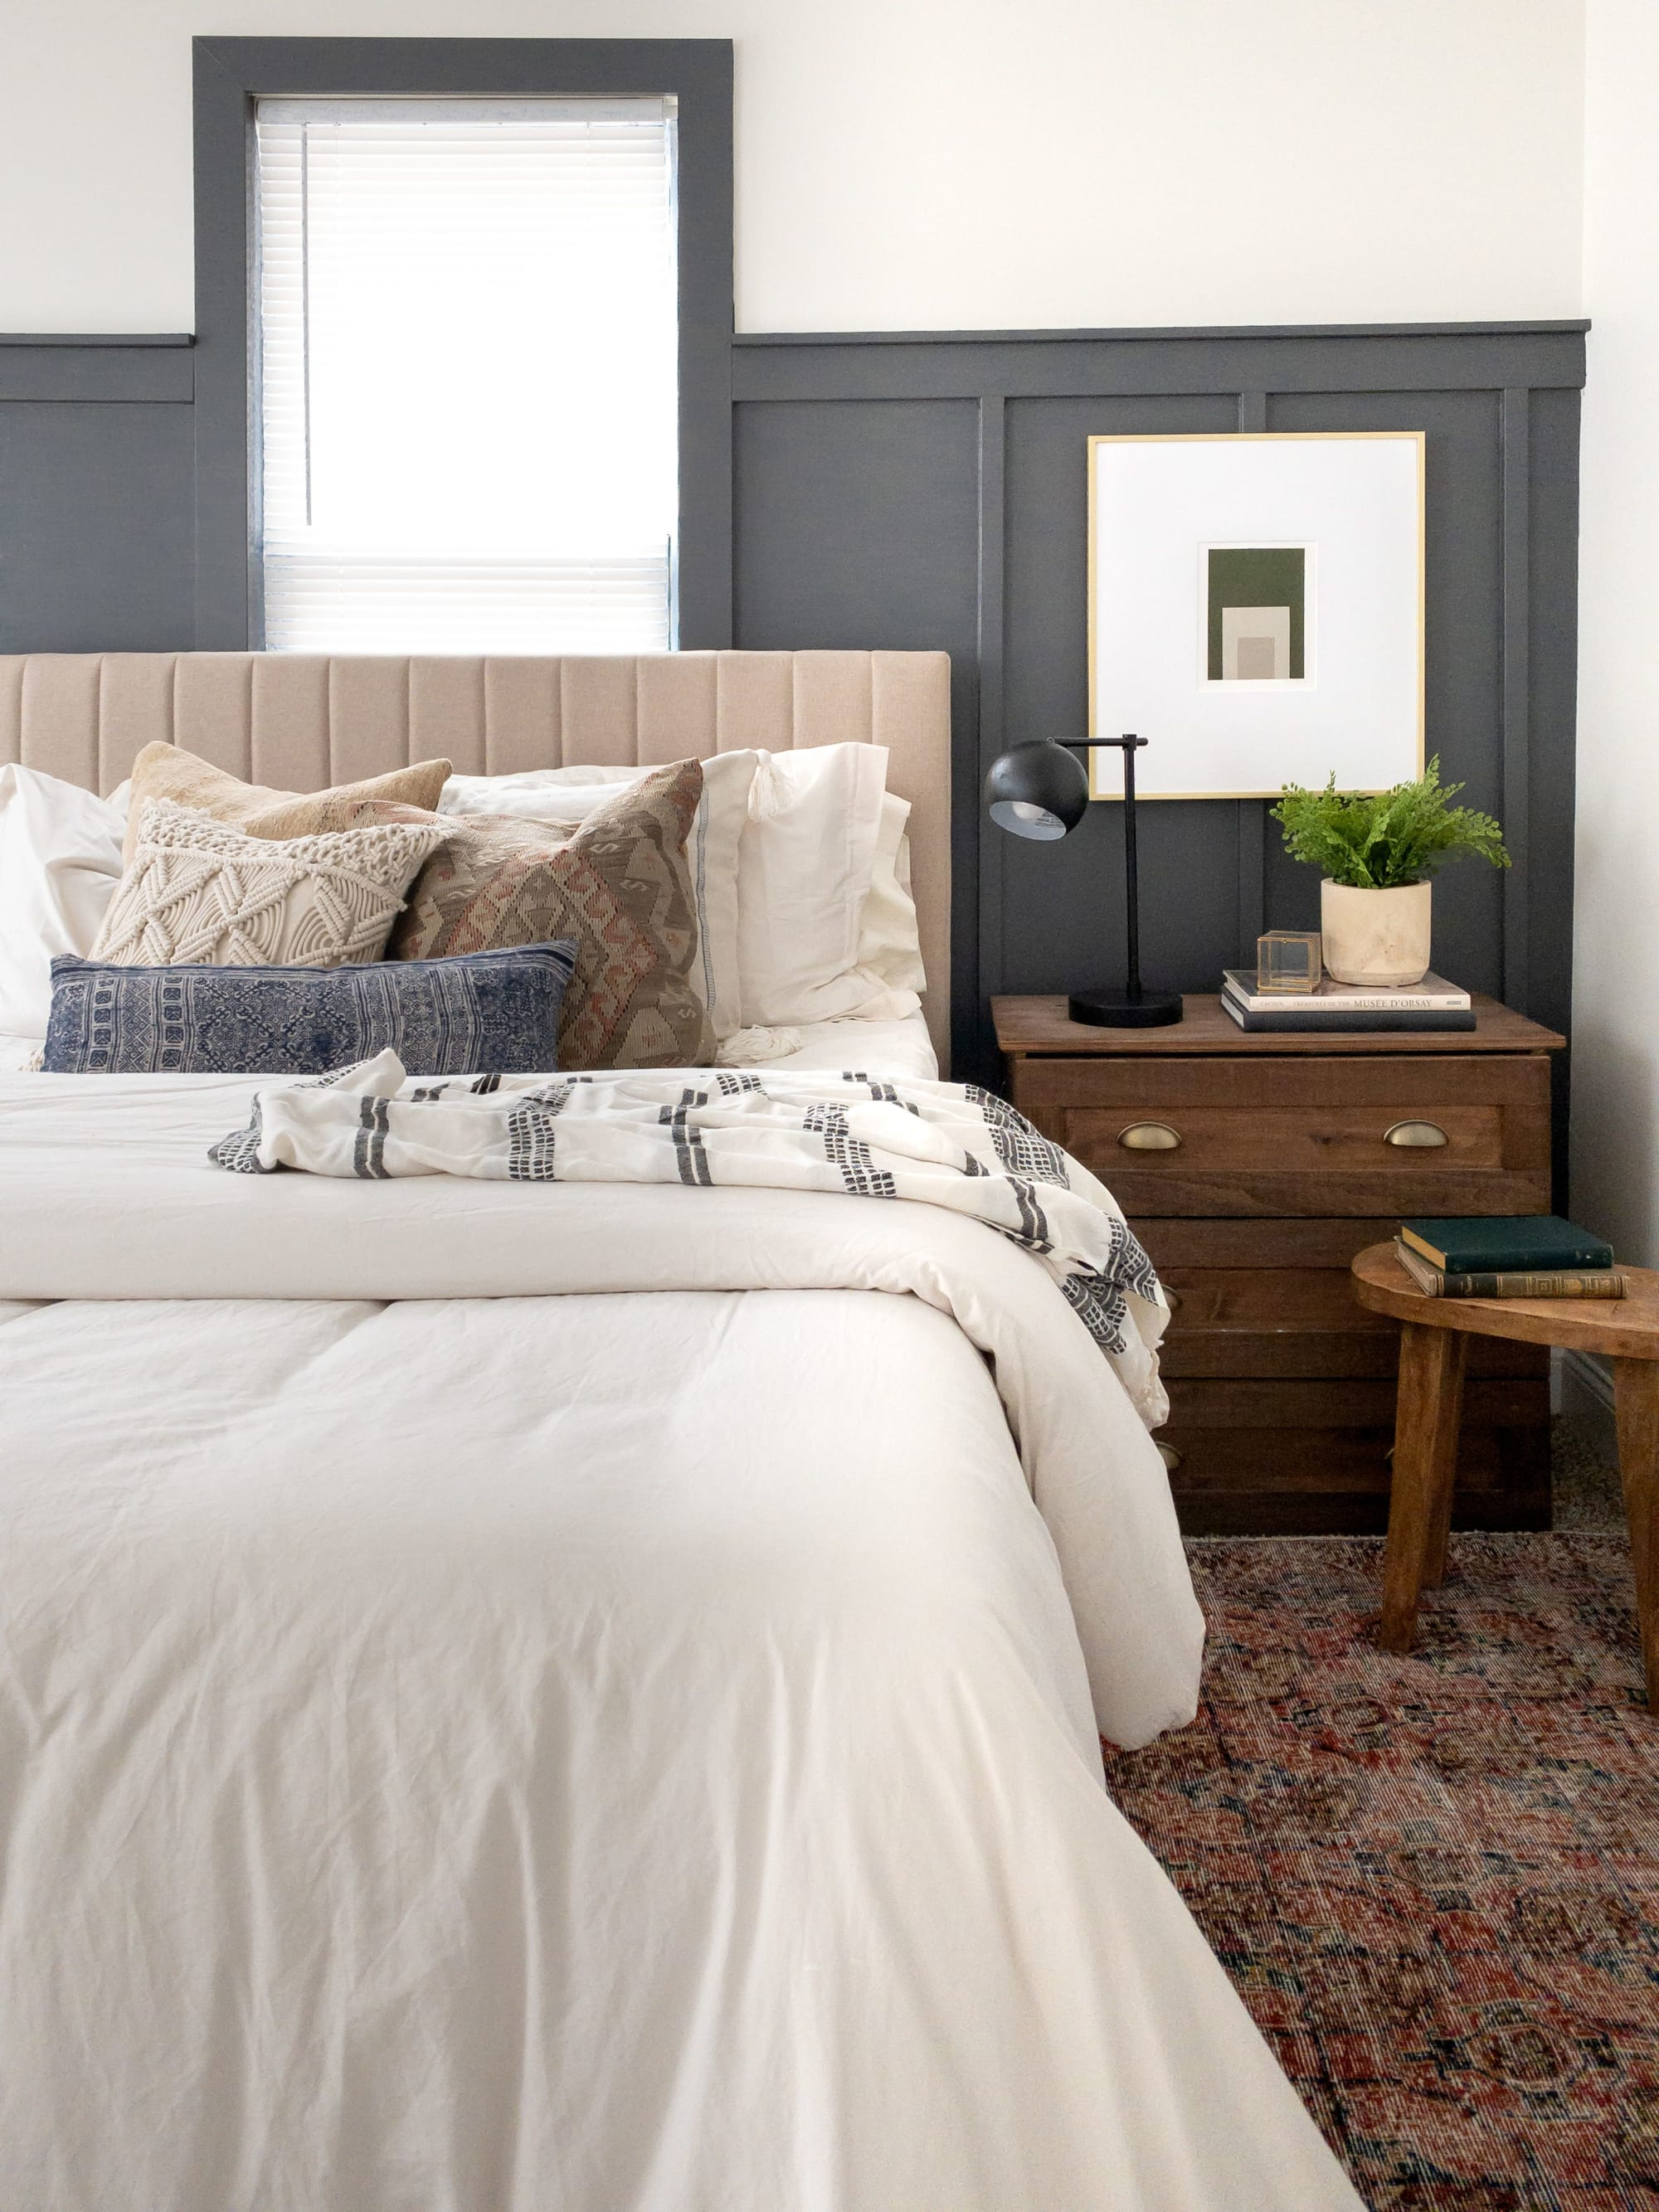 Off white bedding and bohemian pillows